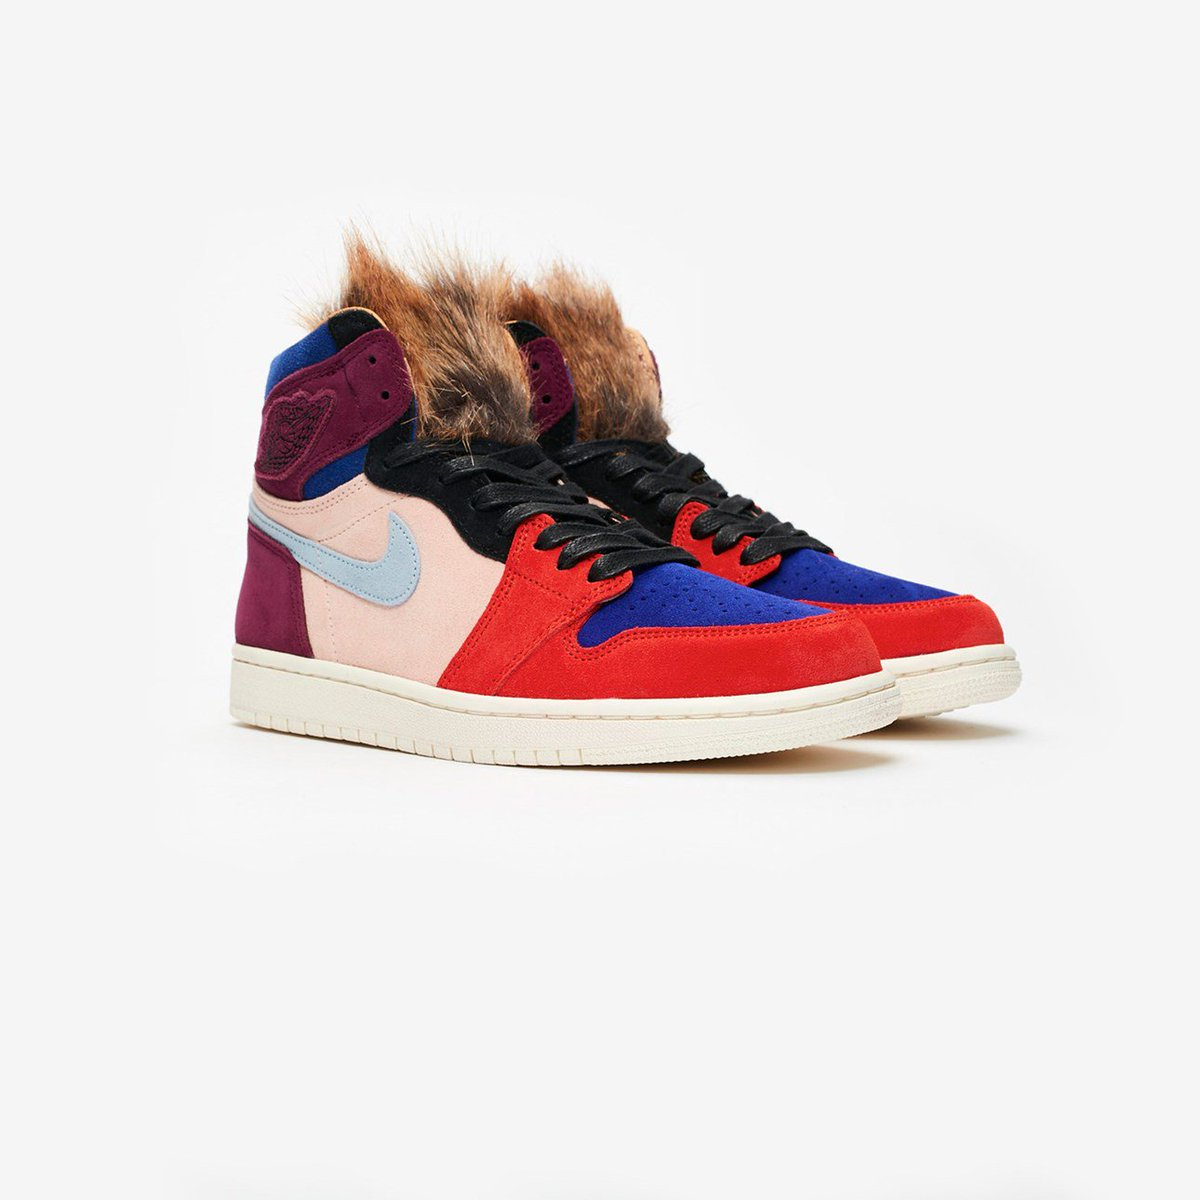 c4f04c925c71b Register now for the Wmns Air Jordan 1 High OG NRG x Aleali May online  raffle & online raffle with in-store pick up (Paris, London, Berlin,  Stockholm) at: ...